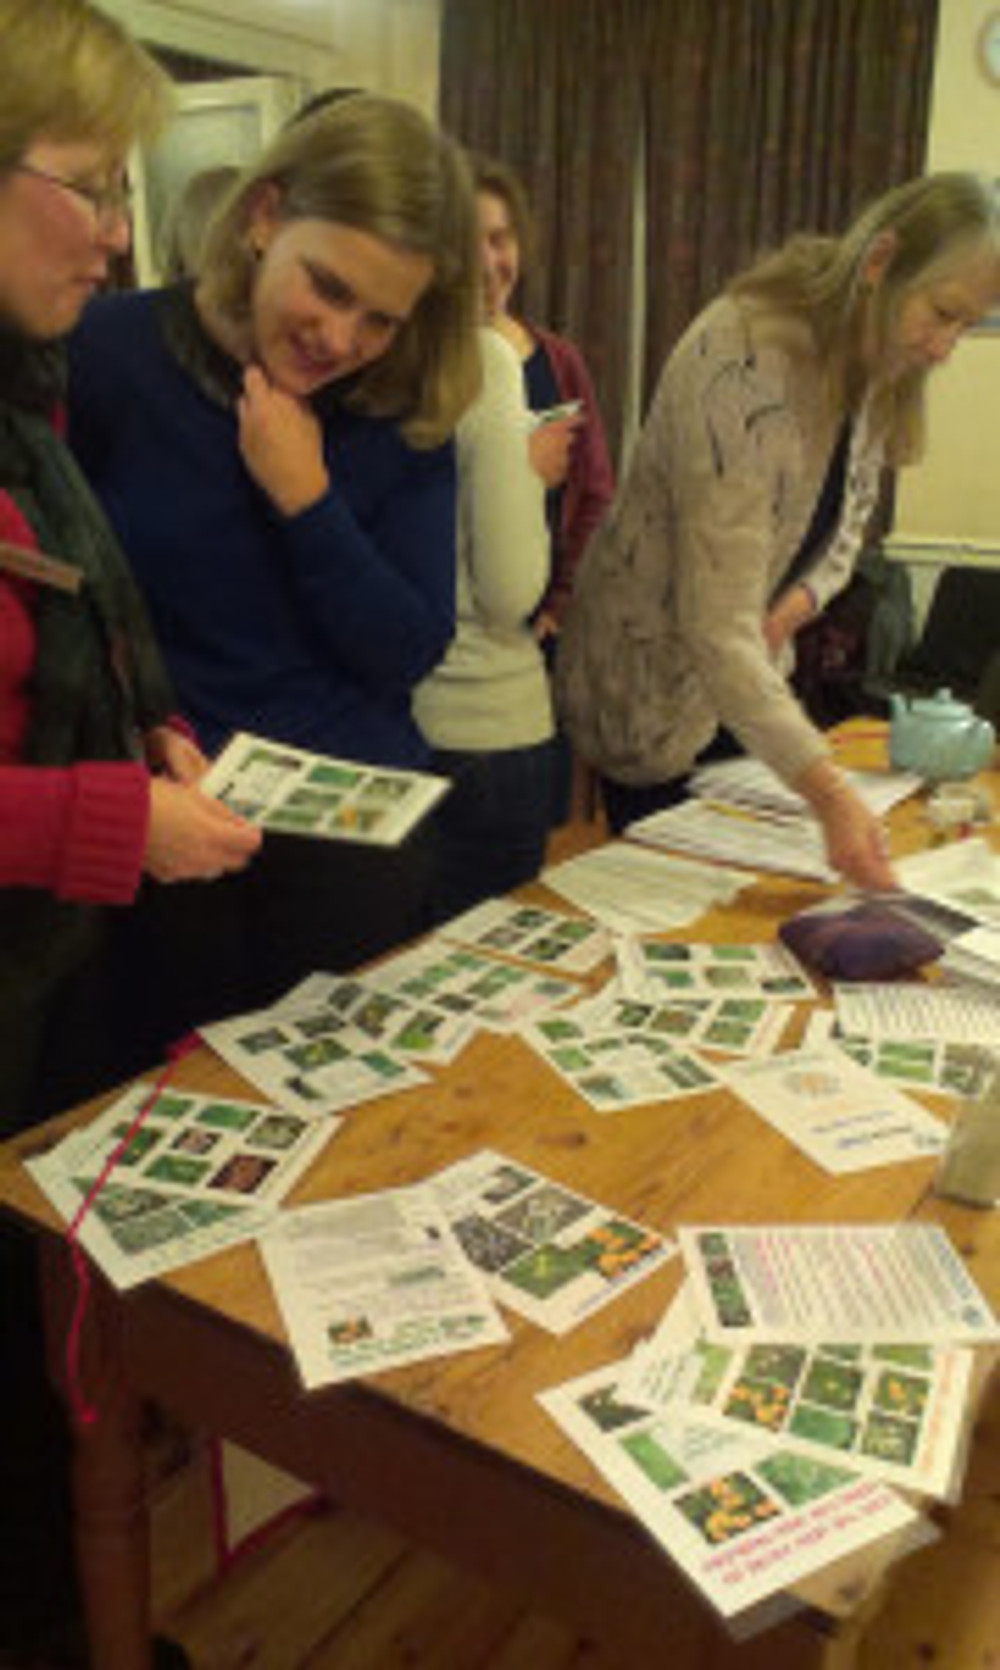 Ladybirds peruse the information sheets and recipes